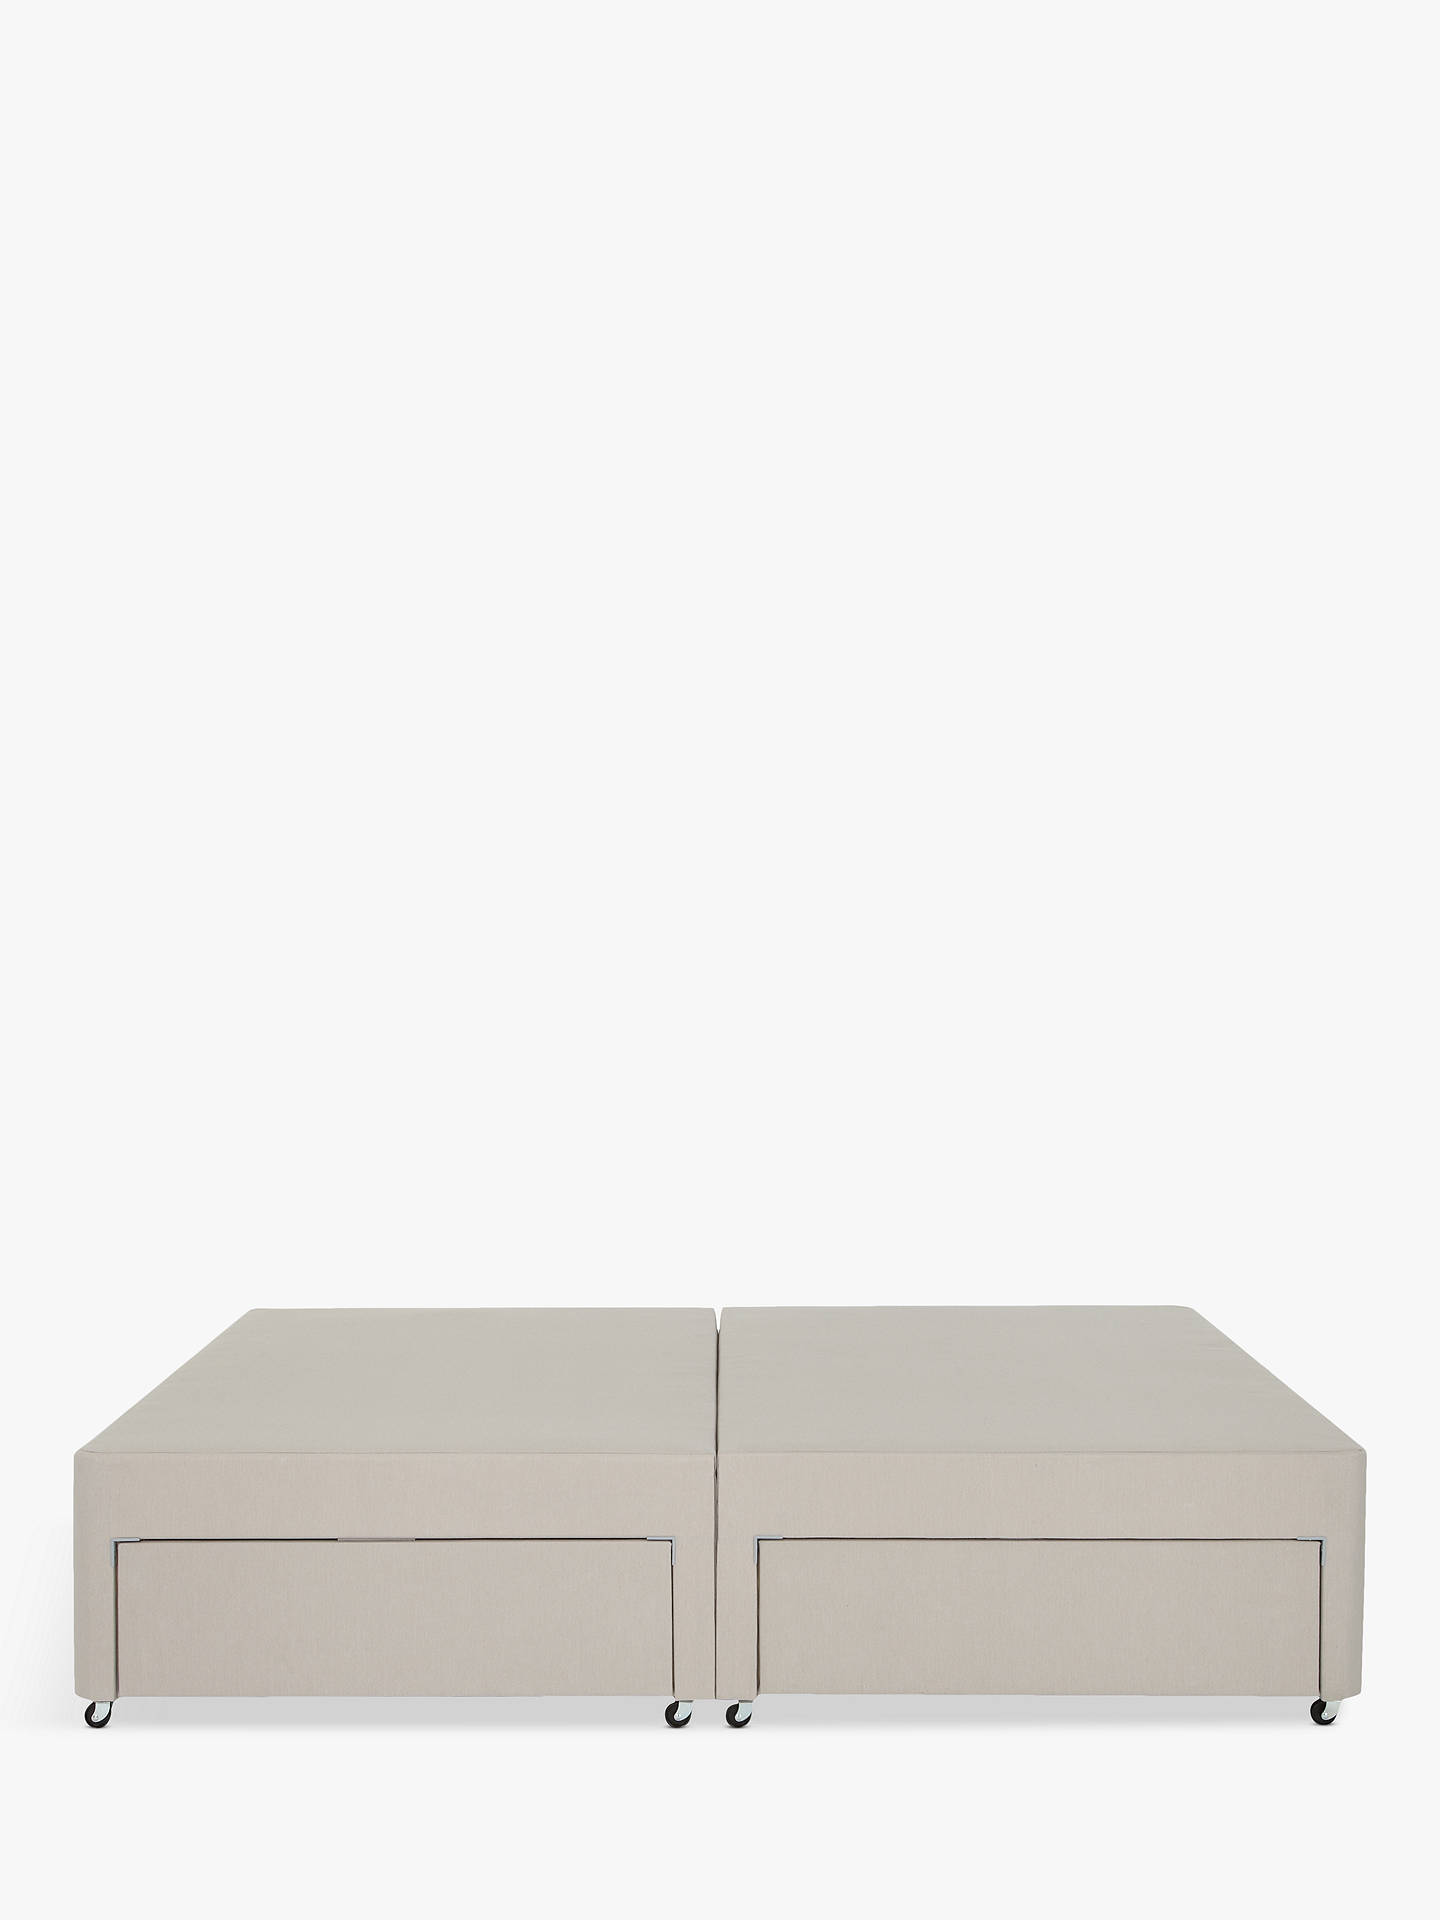 BuyJohn Lewis & Partners Non-Sprung 4 Drawer Divan Storage Bed, Pebble, Small Double Online at johnlewis.com